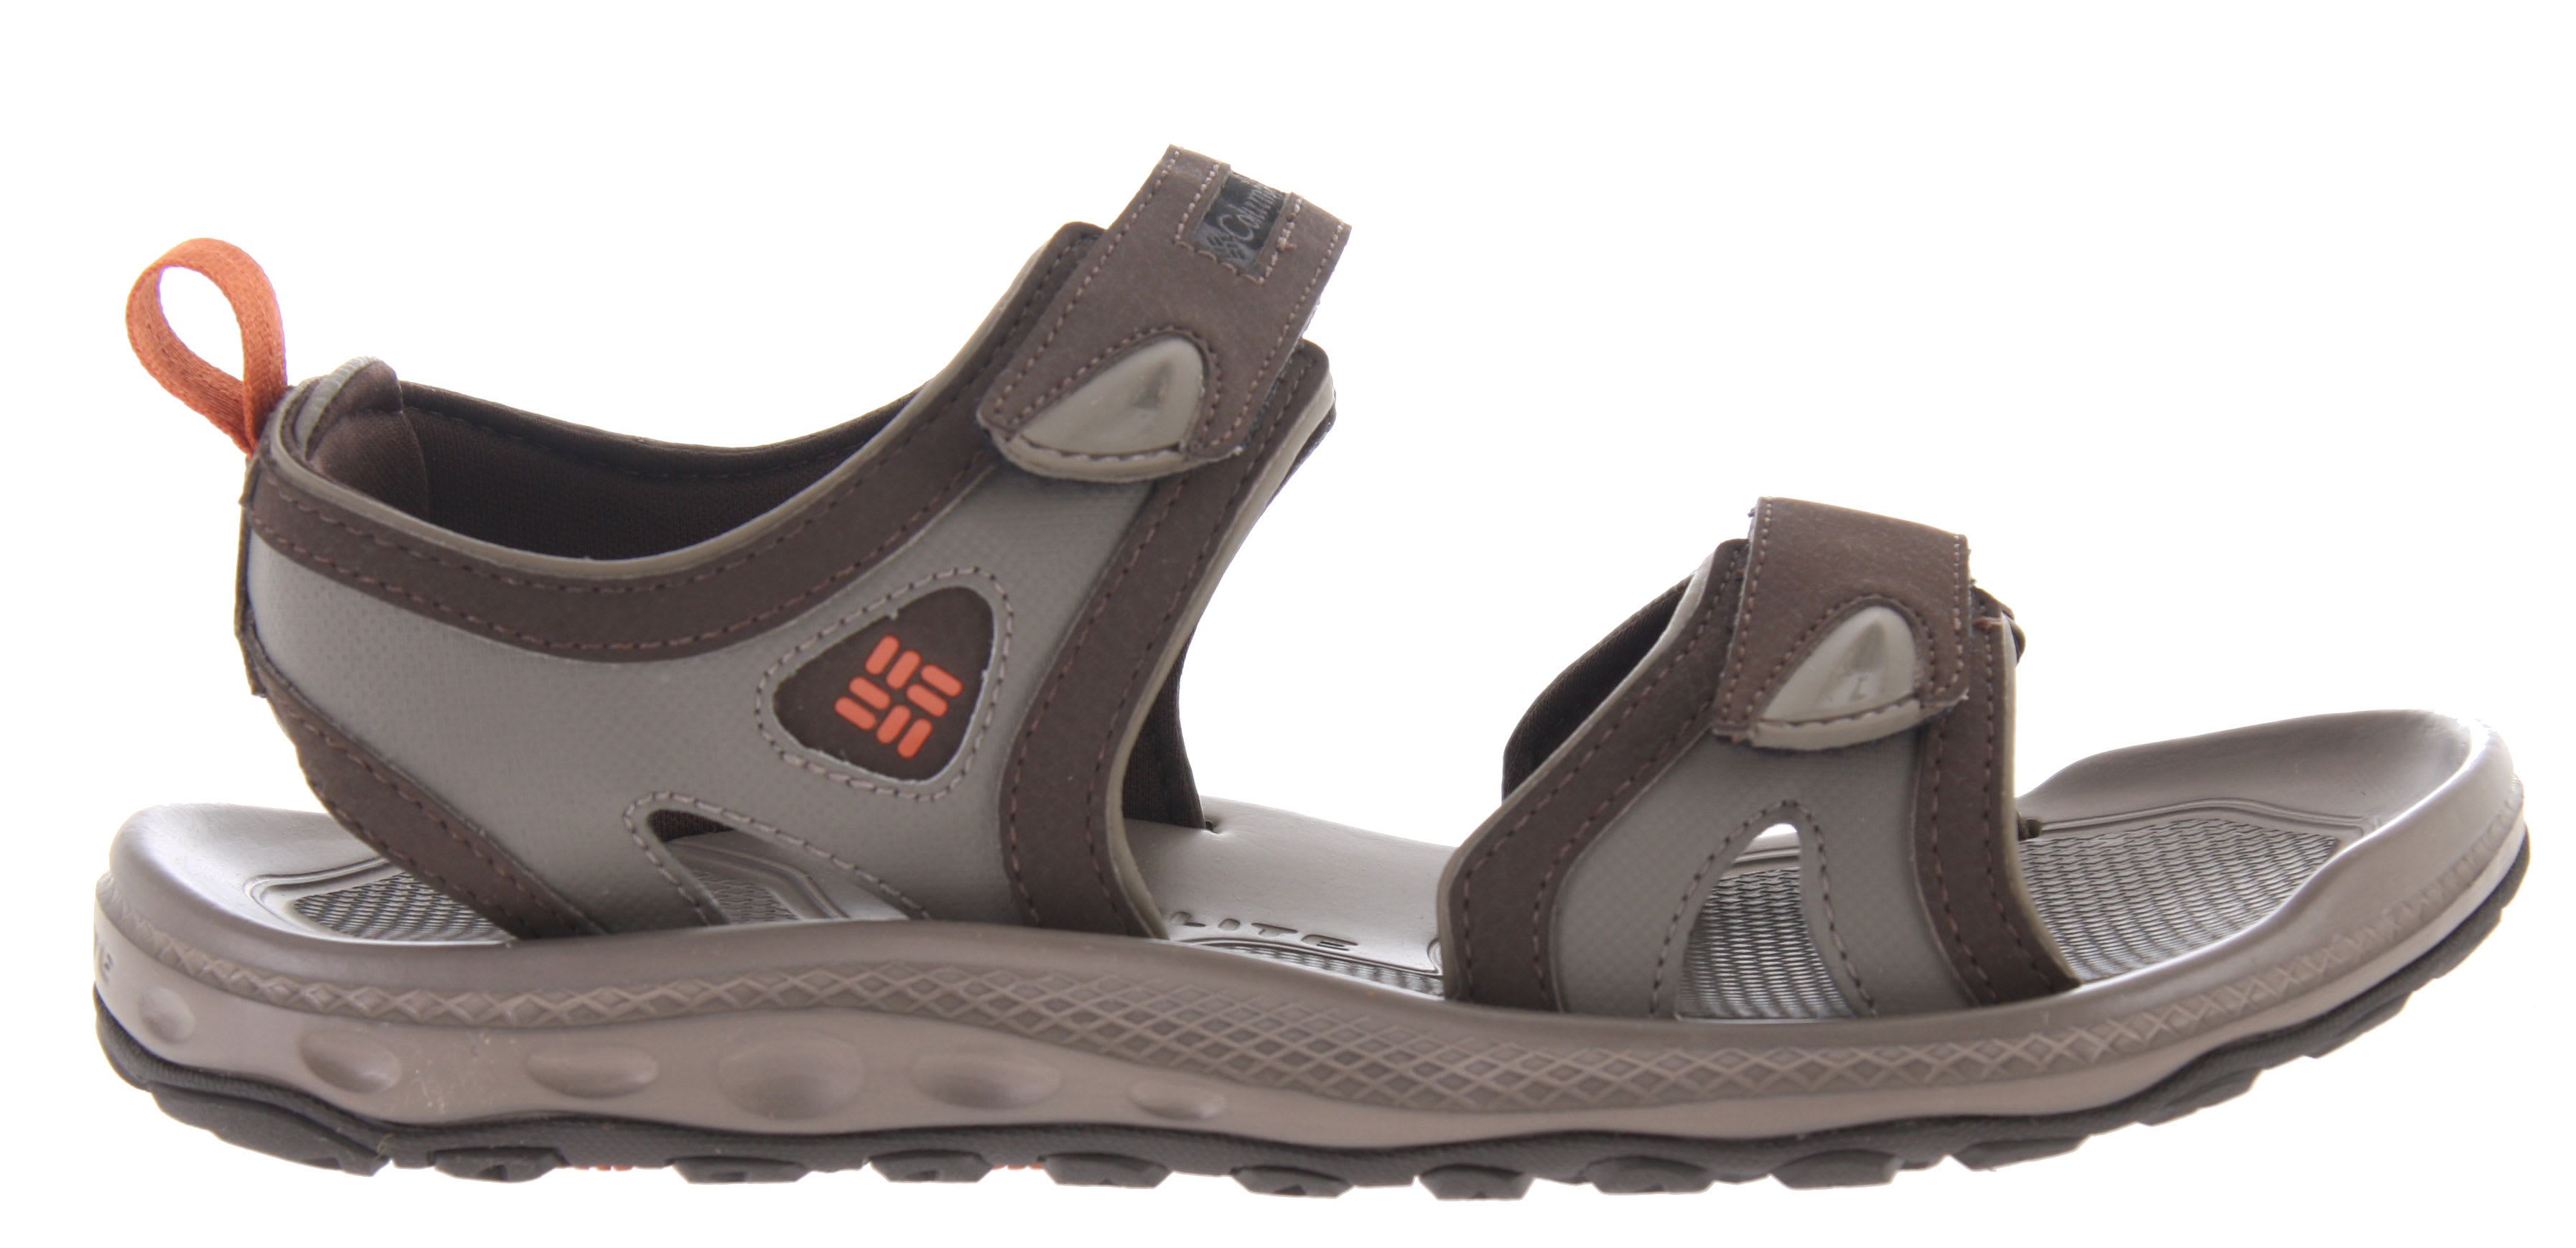 Shop for Columbia Techsun 2 Sandals Turkish Coffee - Men's